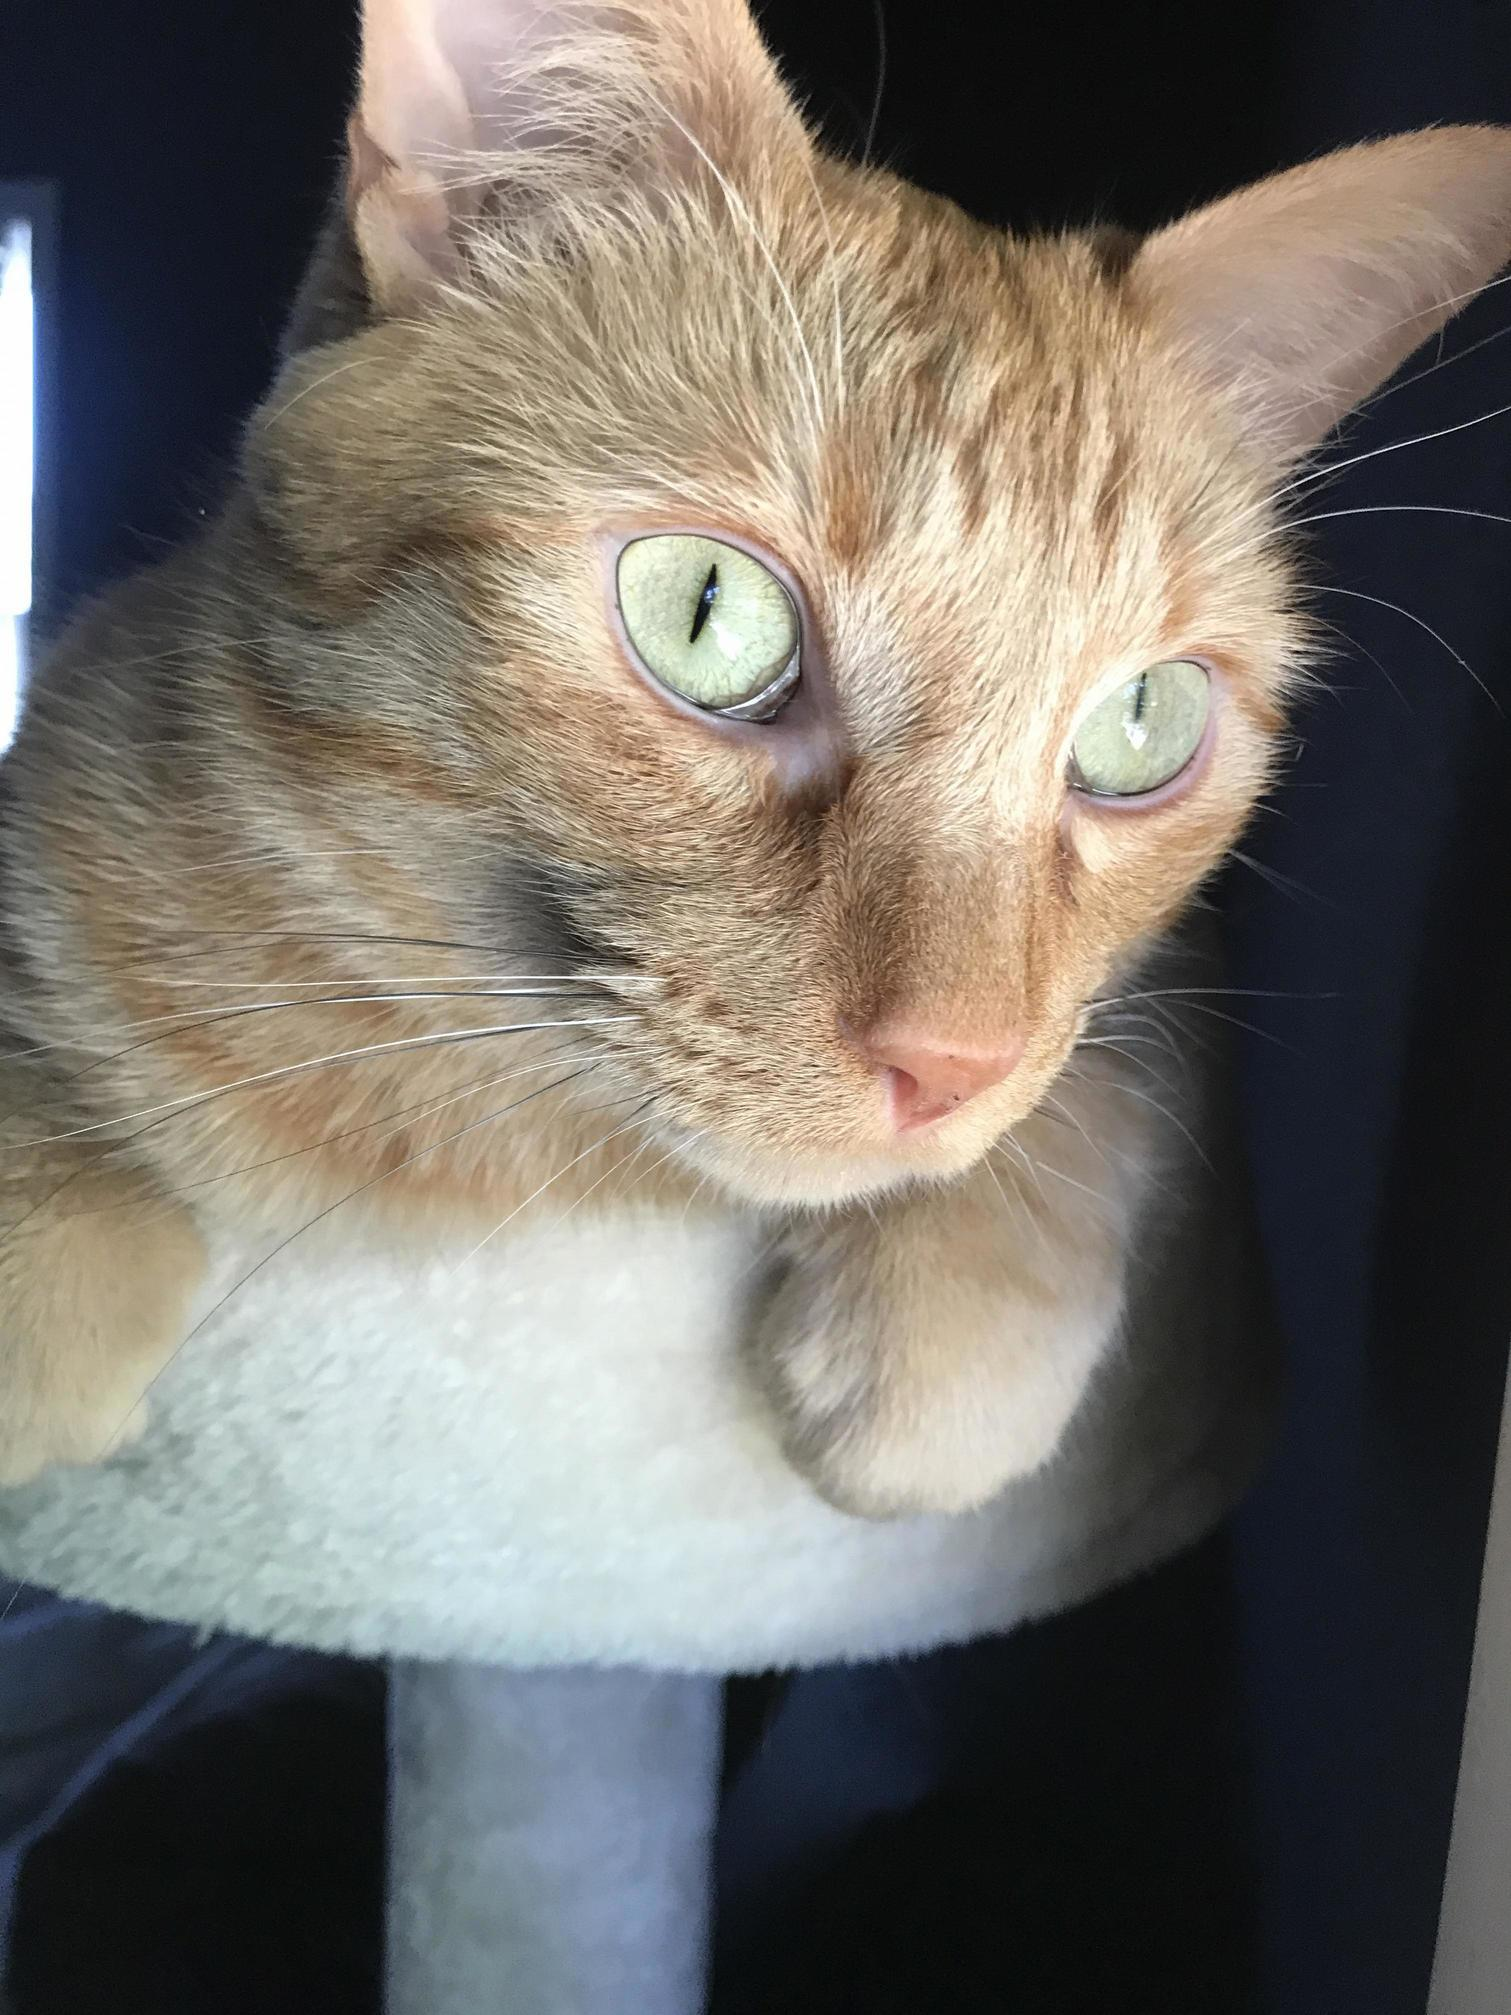 My youngest cat radius named after him being born without a radius bone in his paw sitting up on his tower staring at the outside world in front of him.